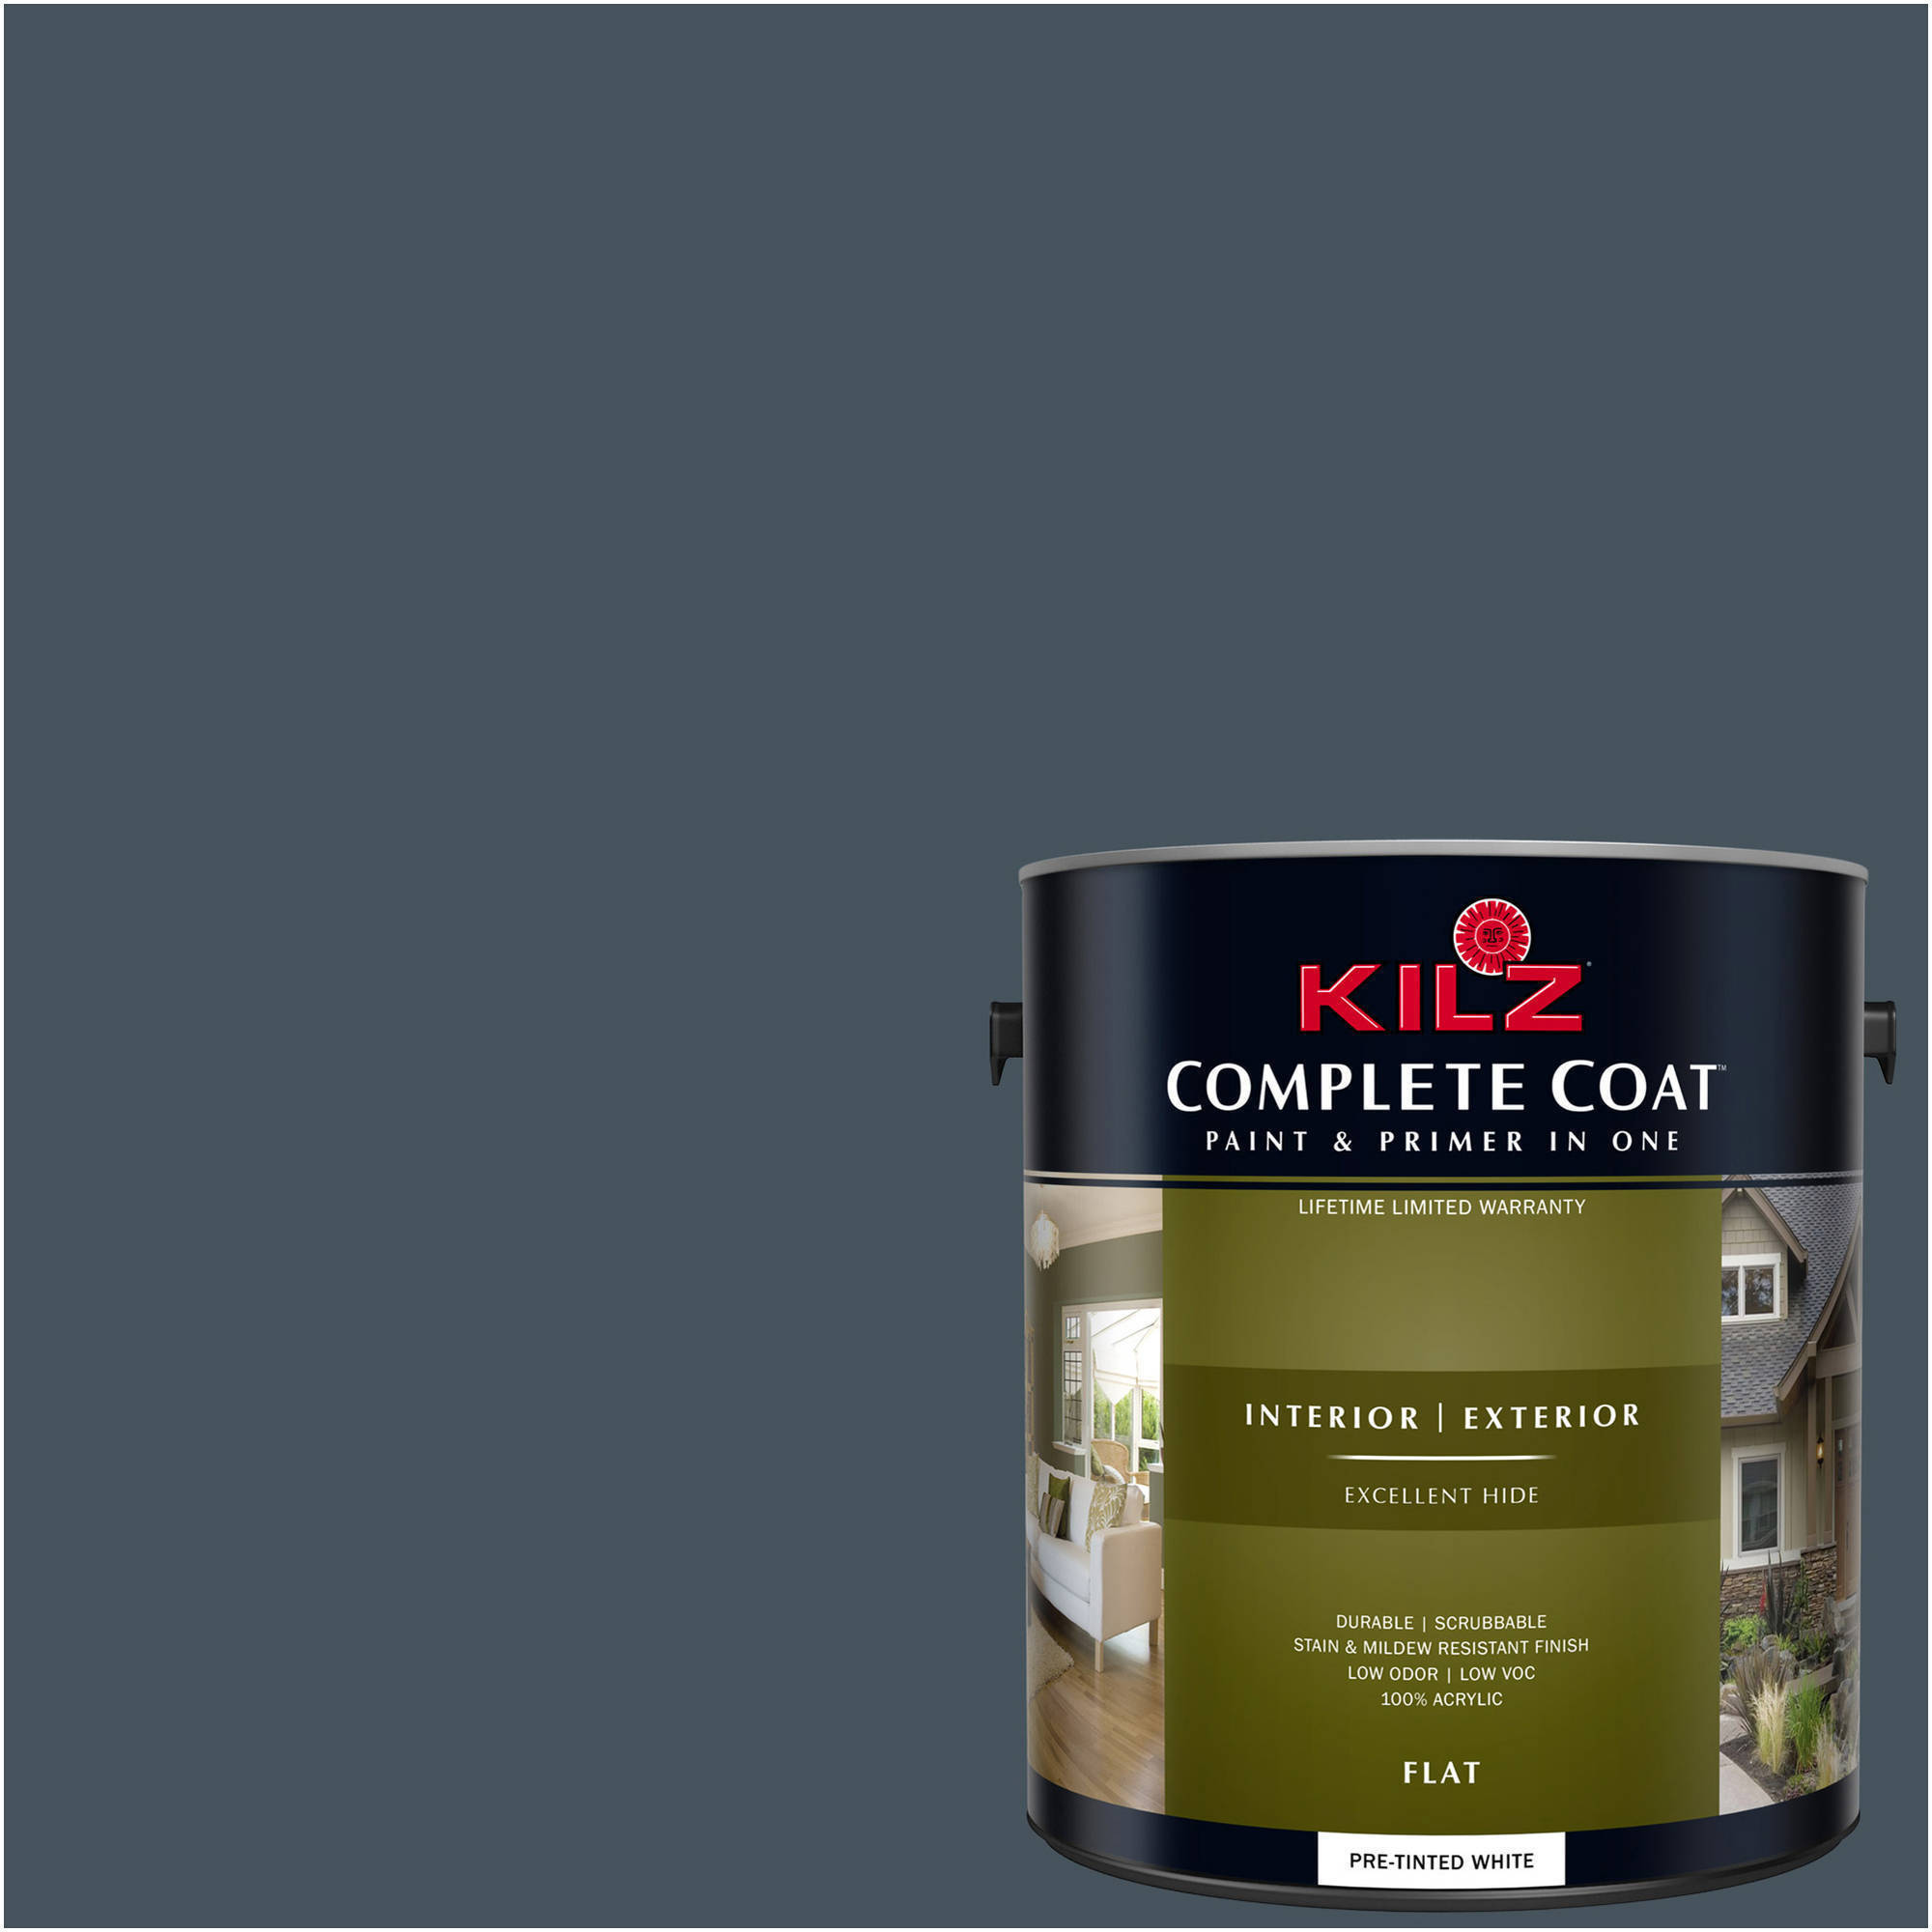 KILZ COMPLETE COAT Interior/Exterior Paint & Primer in One #RE120-02 Kettle Black